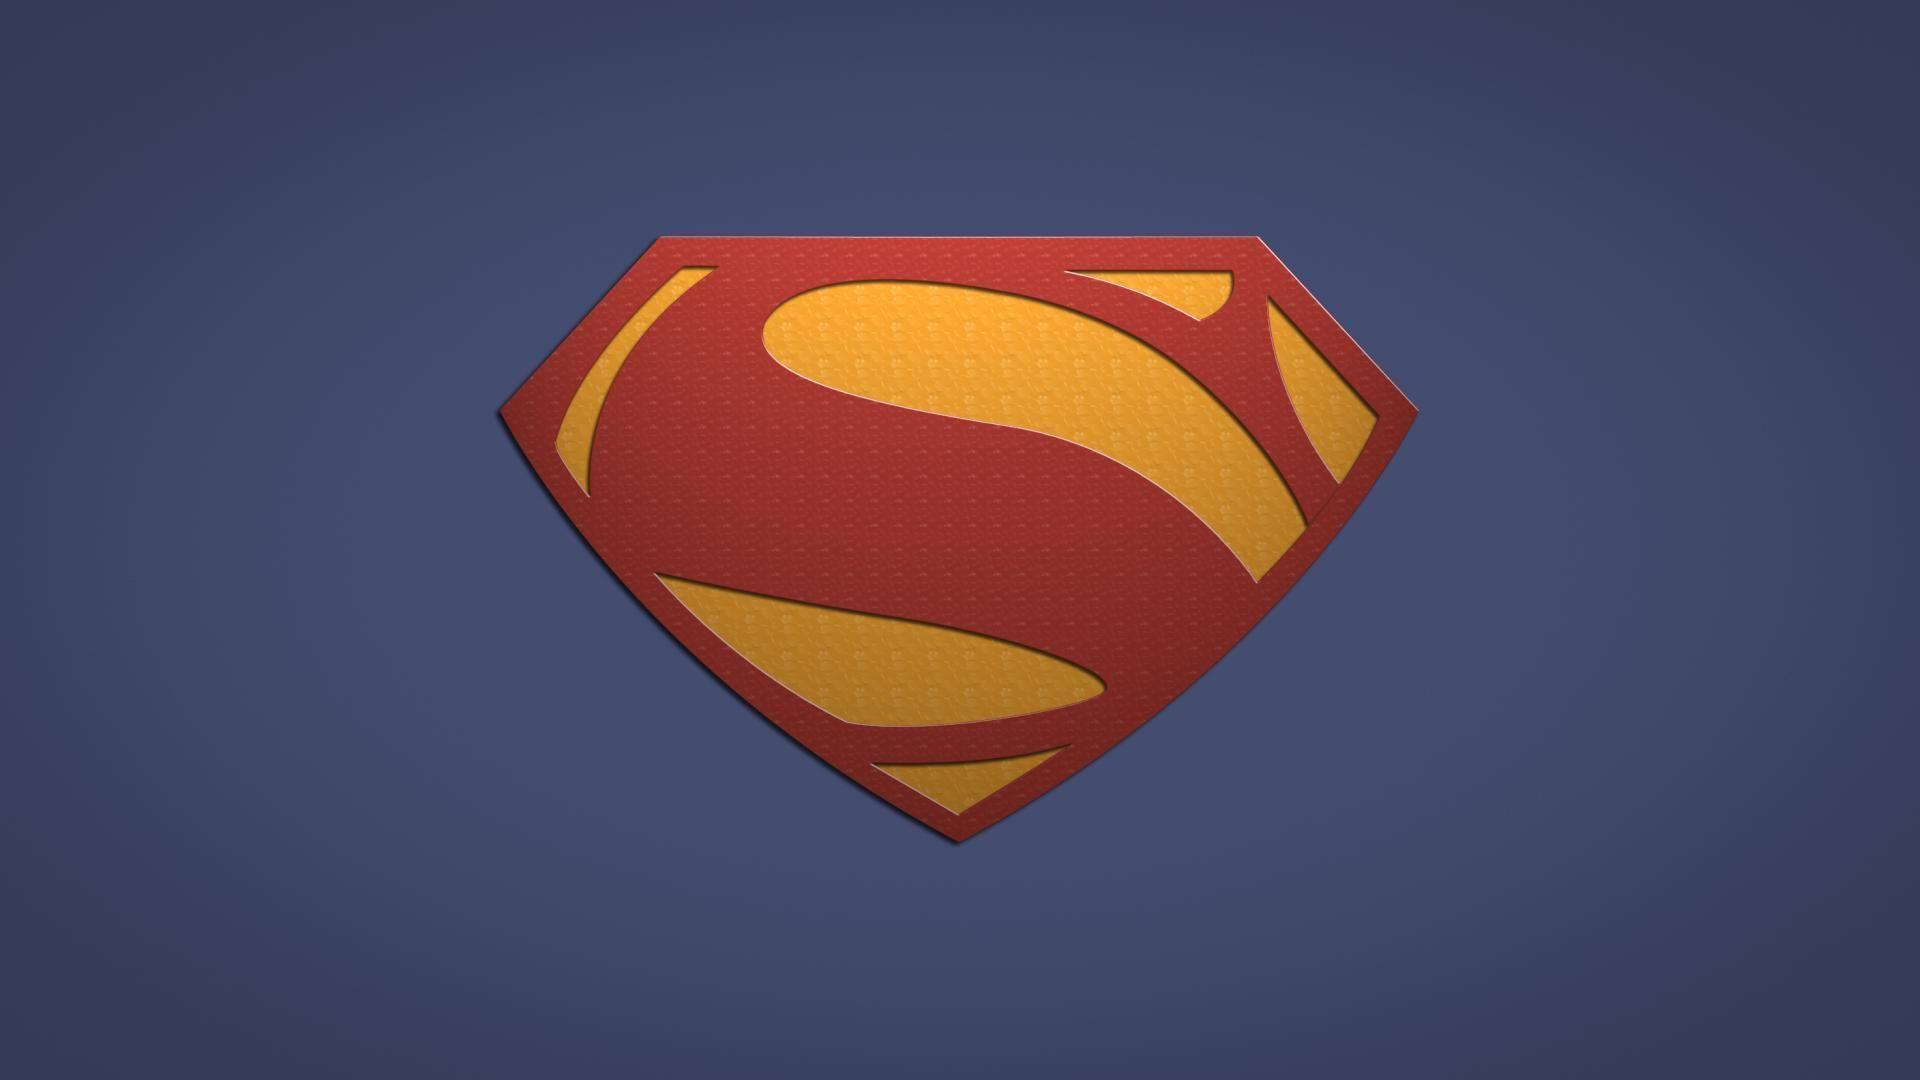 superman logo wallpaper hd - www.